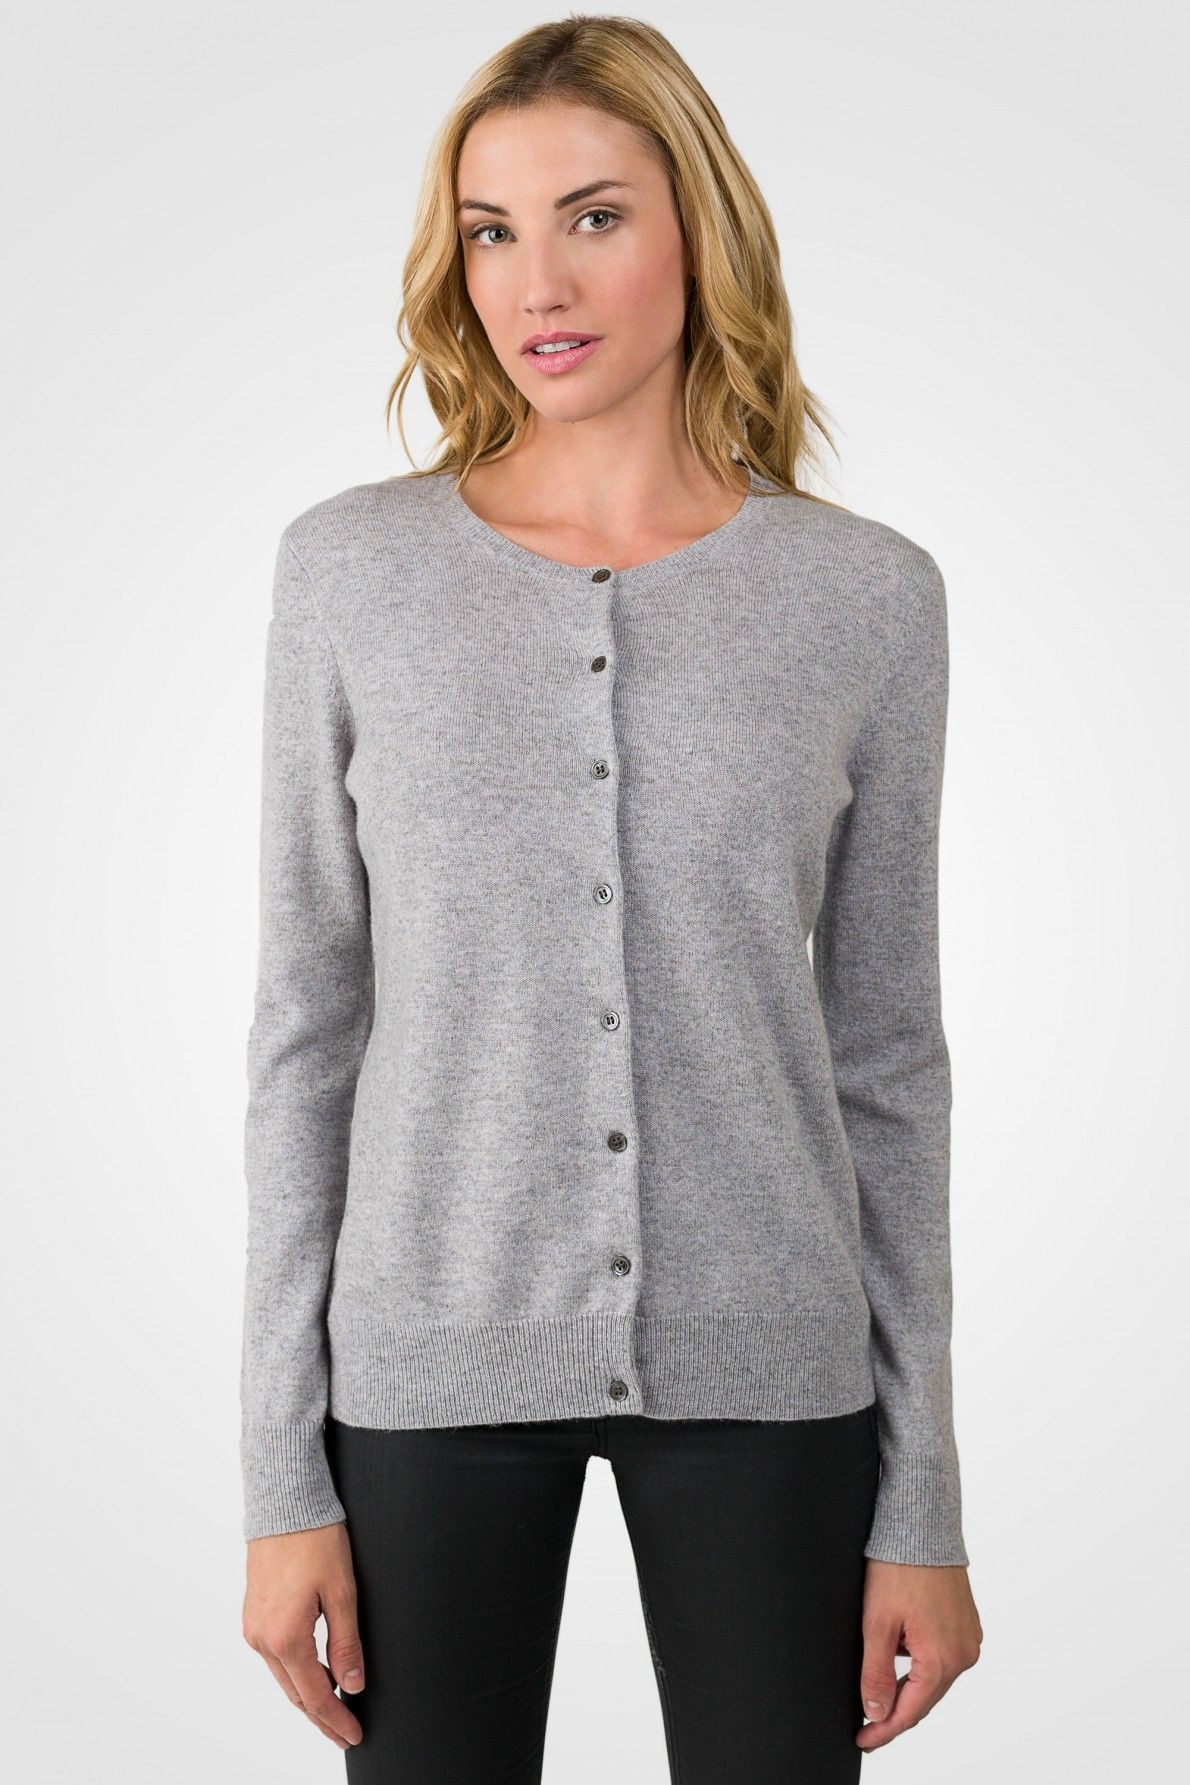 Lt Grey Cashmere Button Front Cardigan Sweater Basic. This is a ...